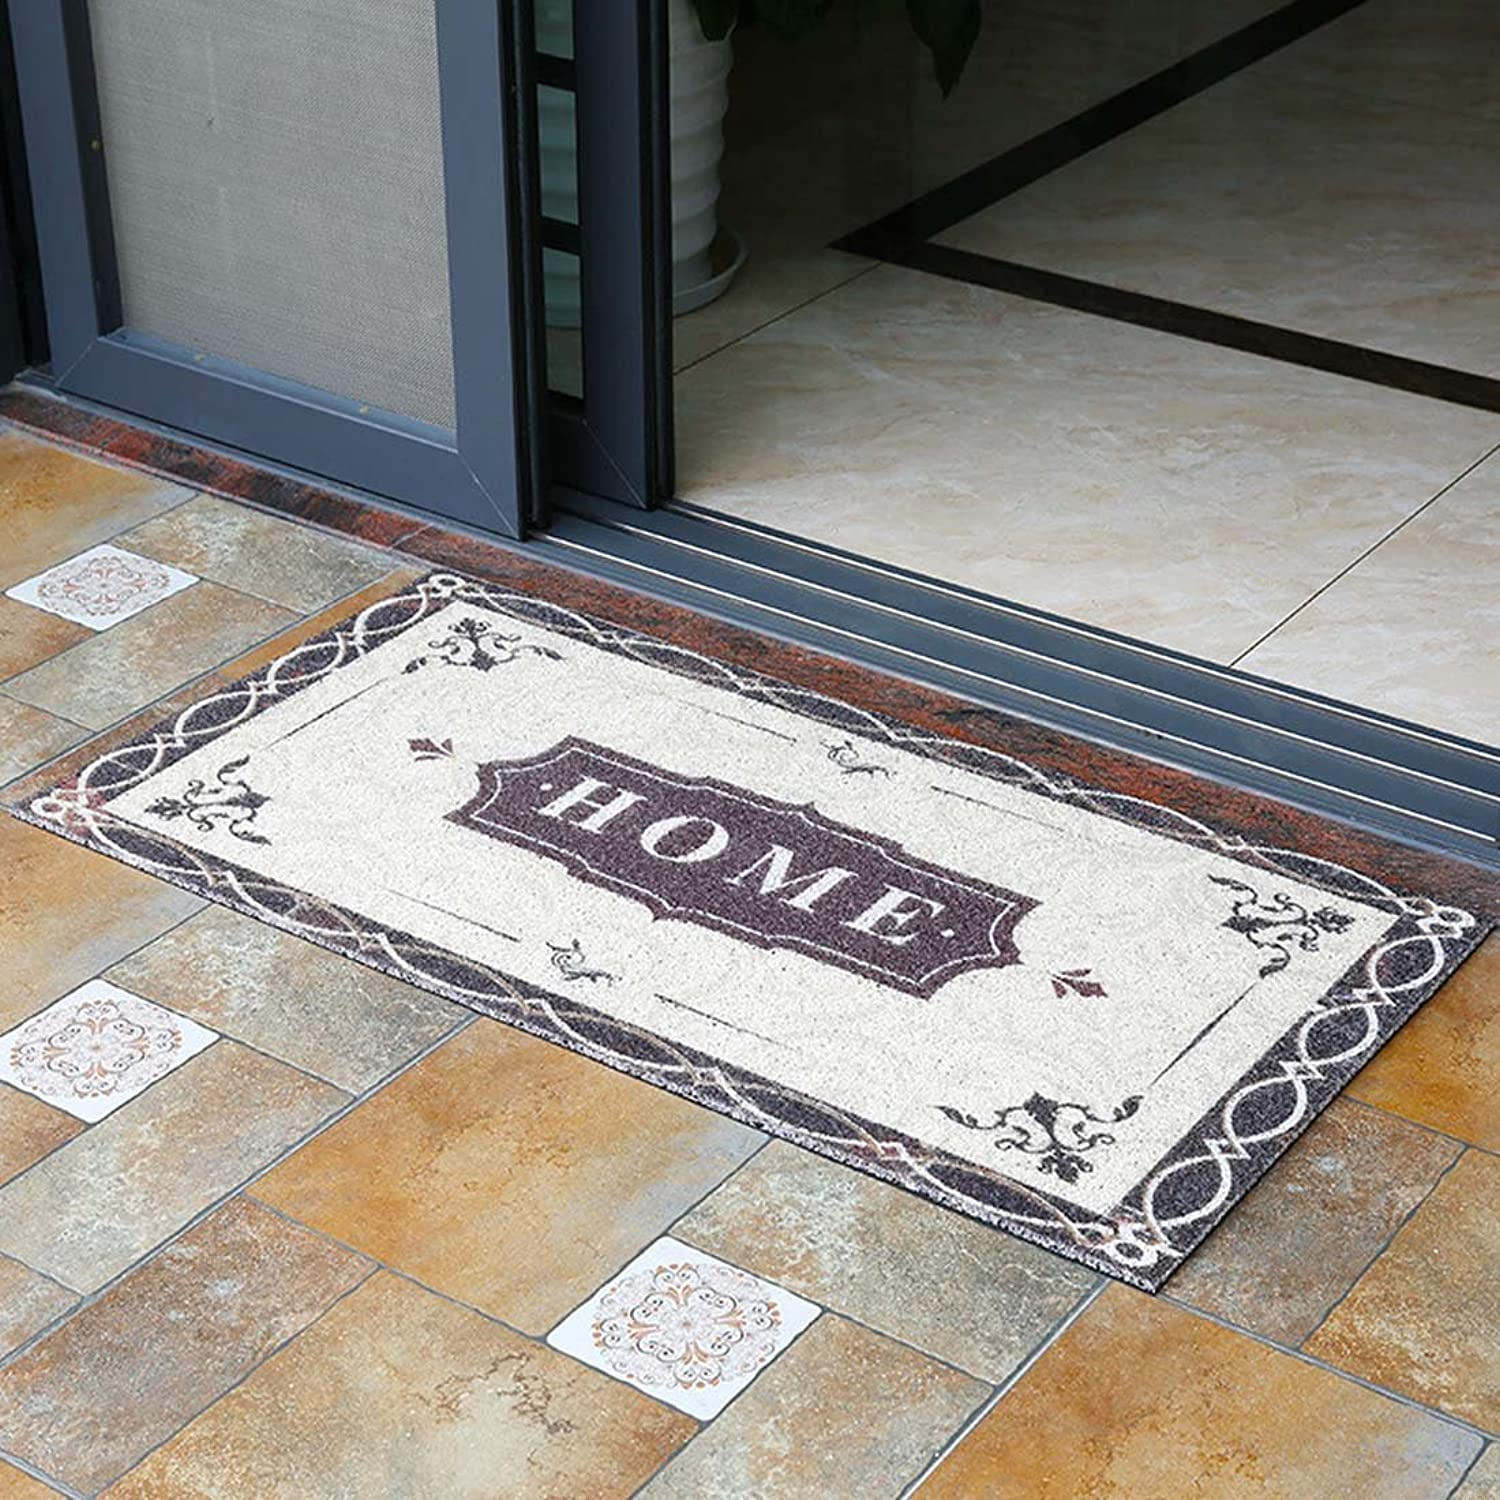 Babe MAPS Indoor Outdoor Doormat Entrance Welcome Mat Absorbent Runner Inserts Non Slip Entry Rug Funny Home Text Home Decor for Inside shoes Scraper Floor Carpet 23 x35